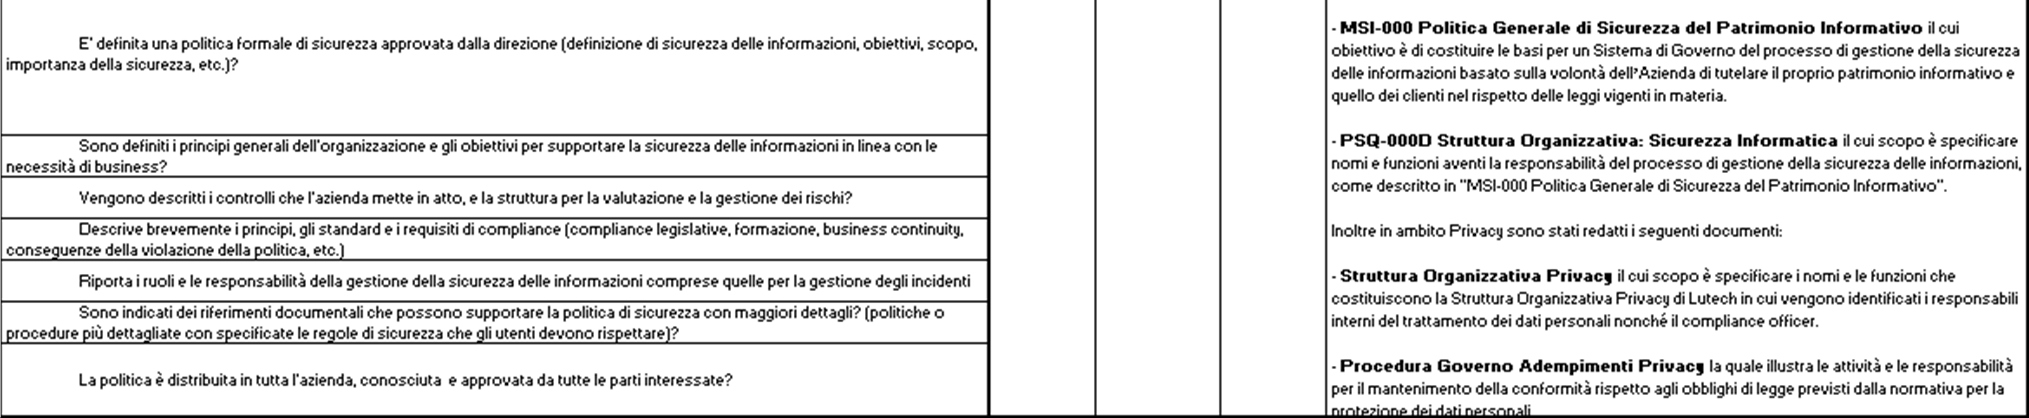 Information Security & Privacy Governance con l obiettivo verificare gli aspetti di security e